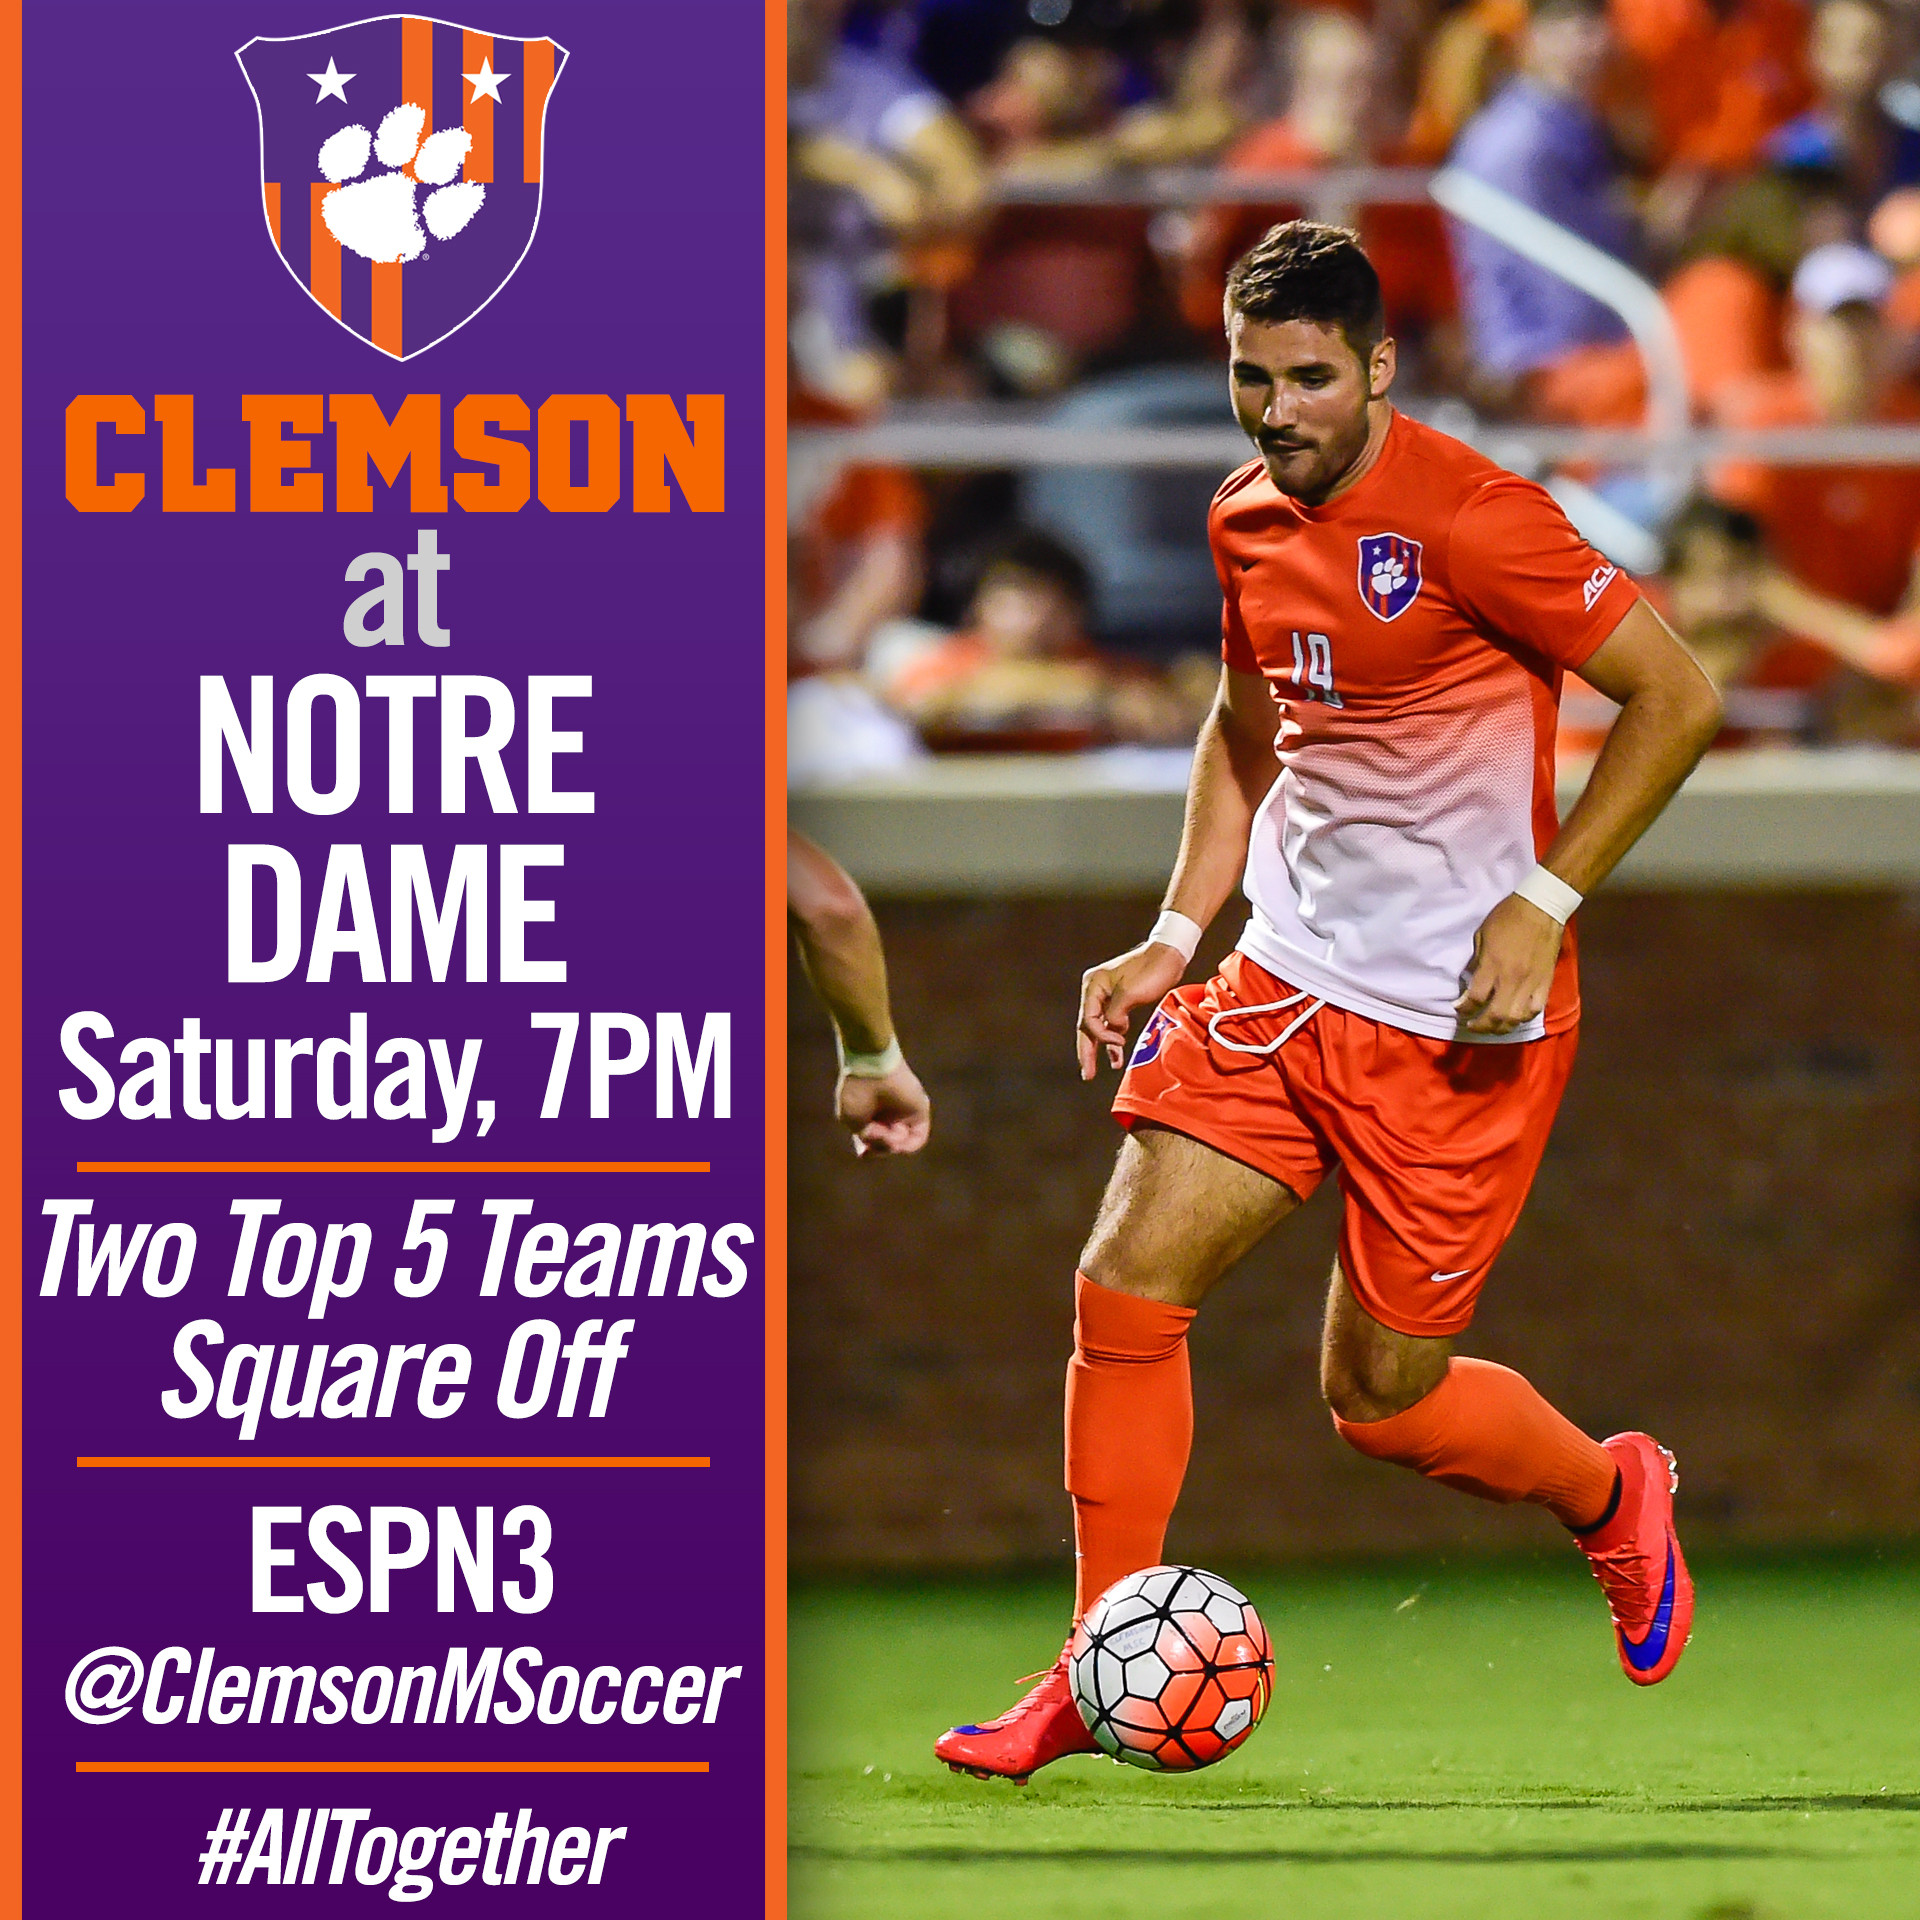 No. 5 Clemson Travels to No. 2 Notre Dame to Begin ACC Play